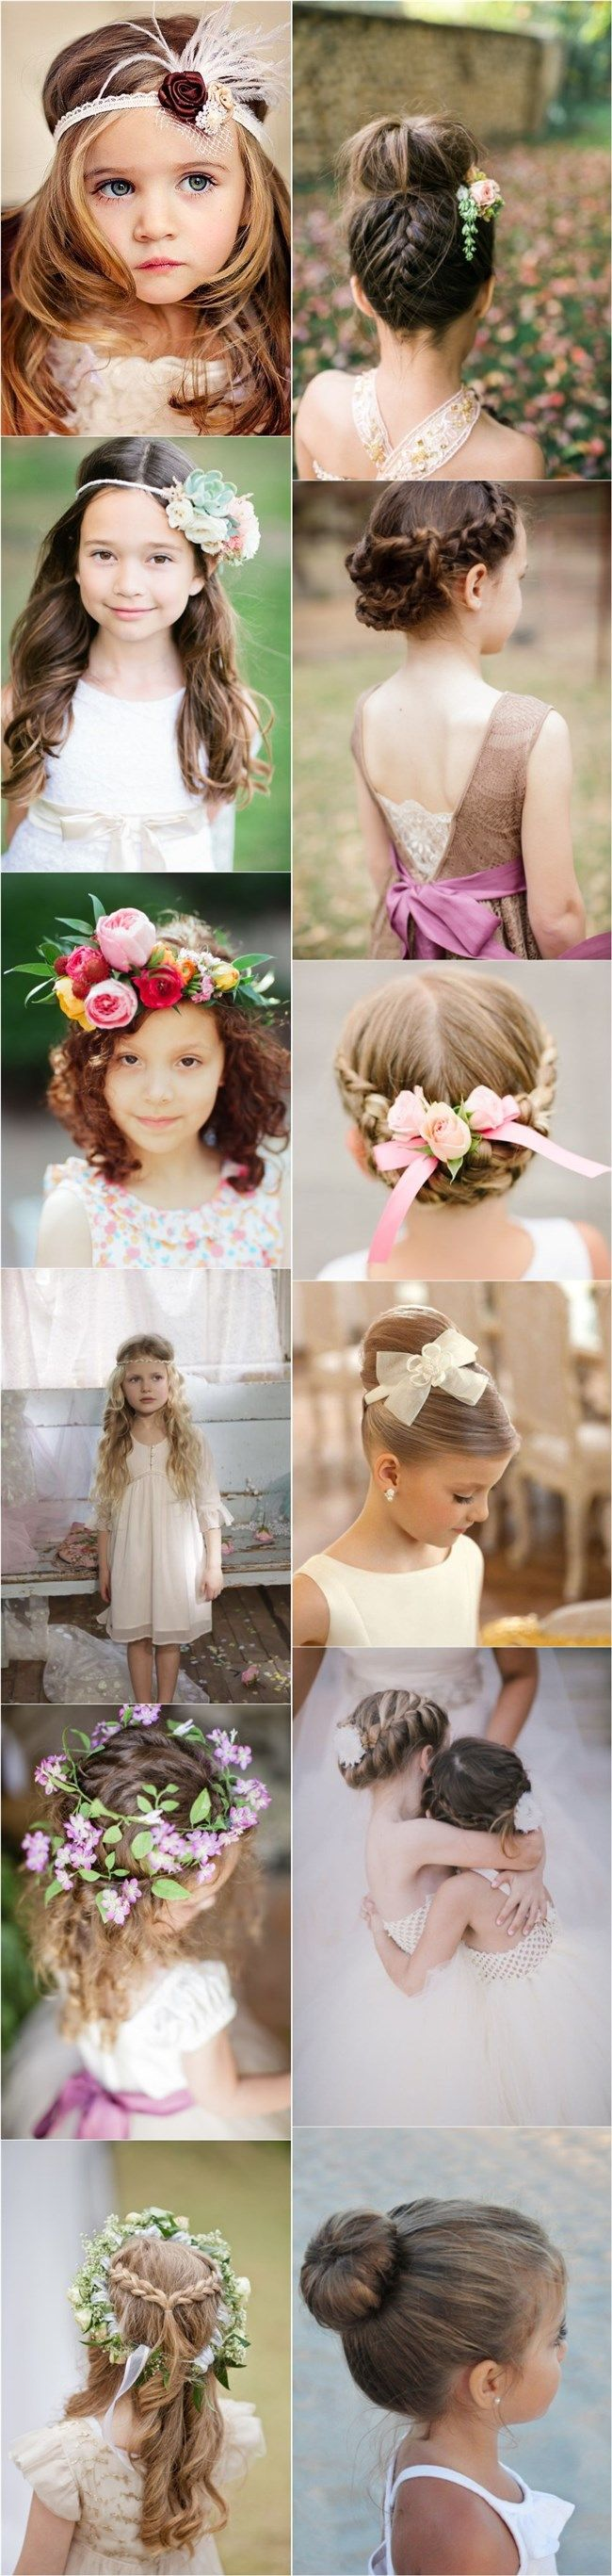 #Wedding #Flowergirls … ♡Wedding App♡ … how to plan a wedding … https://itunes.apple.com/us/app/the-gold-wedding-planner/id498112599?ls=1=8